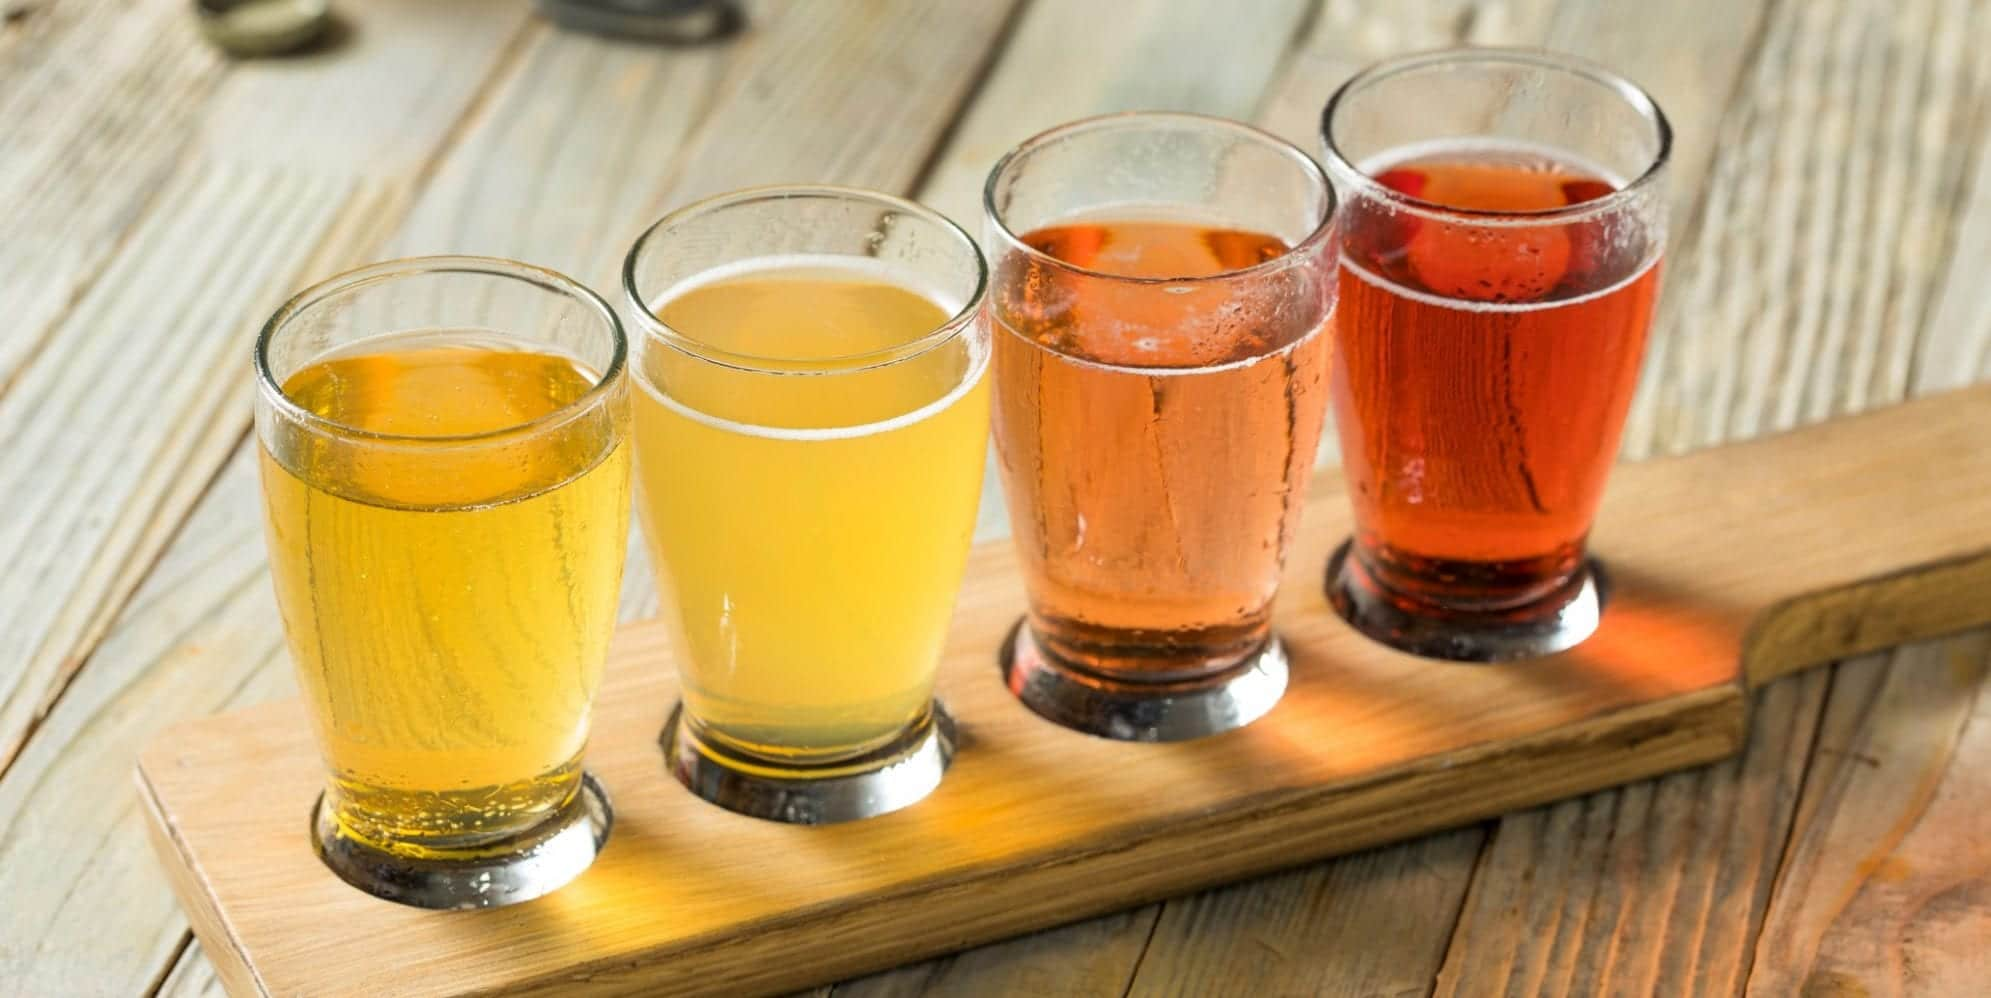 image of glasses of cider